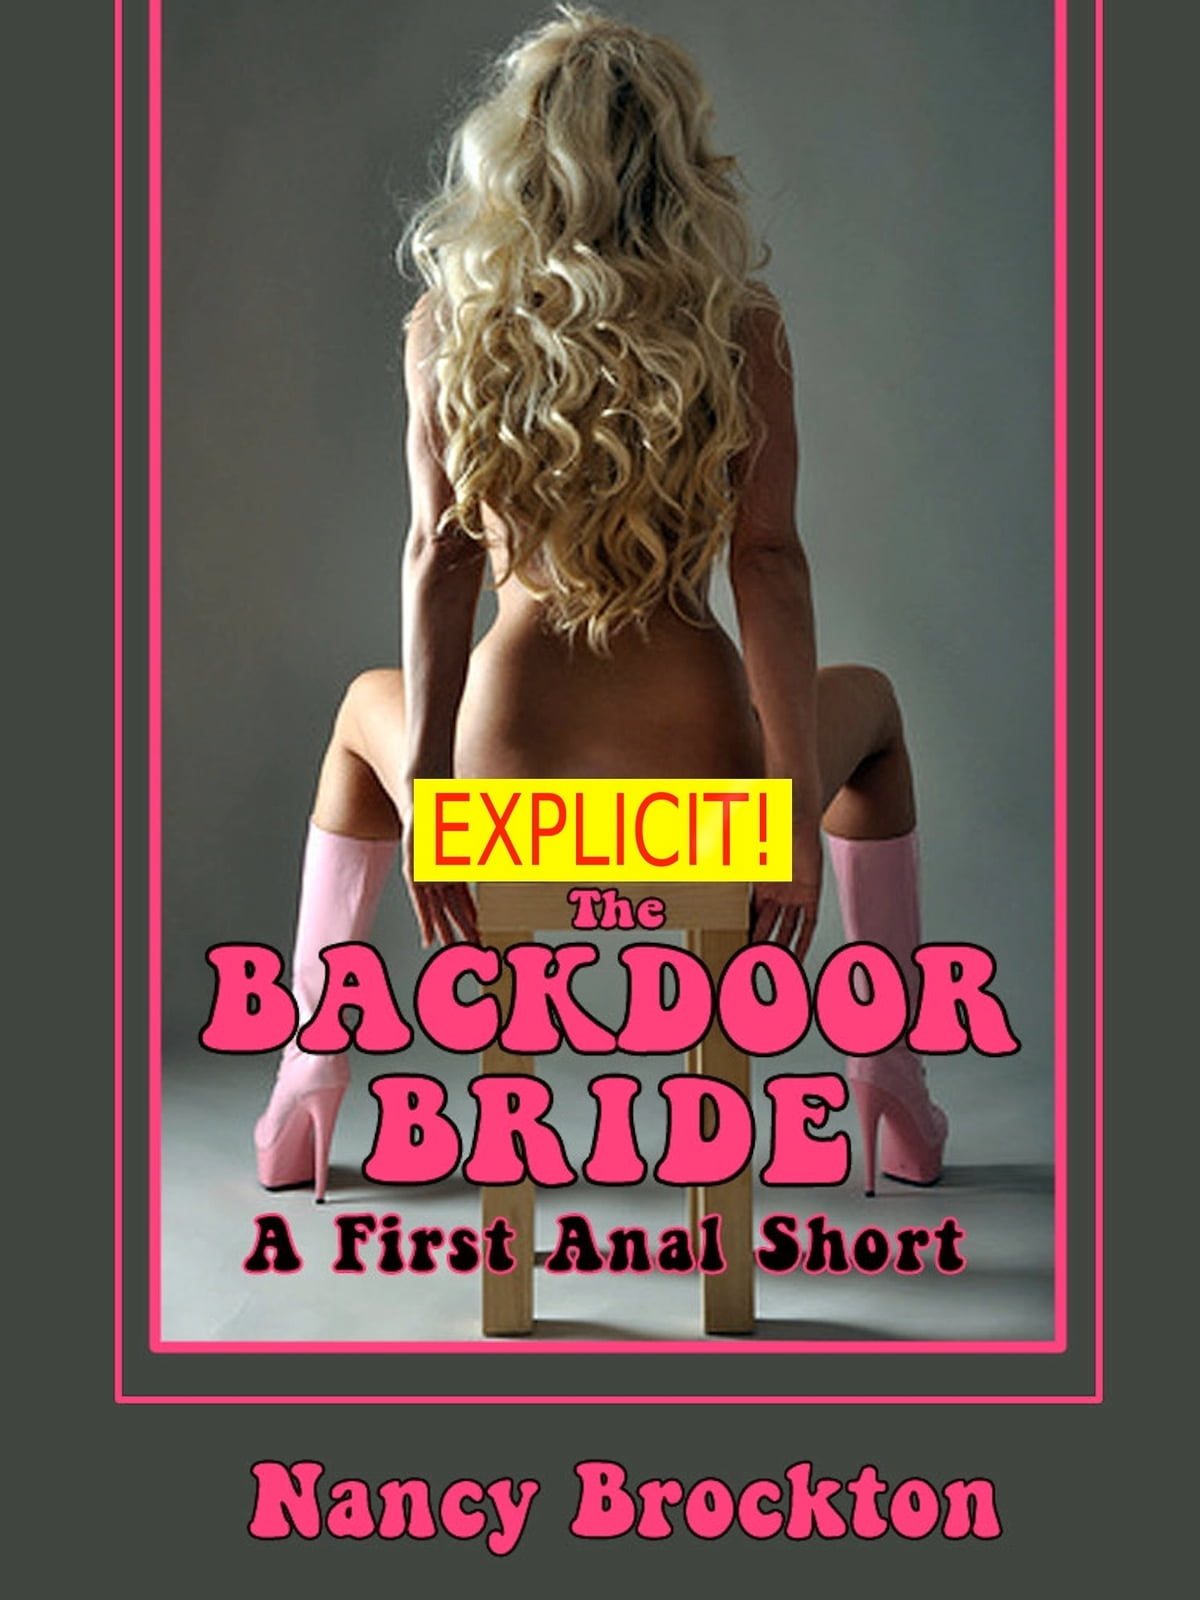 Anal Annie And The Backdoor Housewives the backdoor bride (a first anal sex ffm threesome erotica story) ebook nancy brockton - rakuten kobo